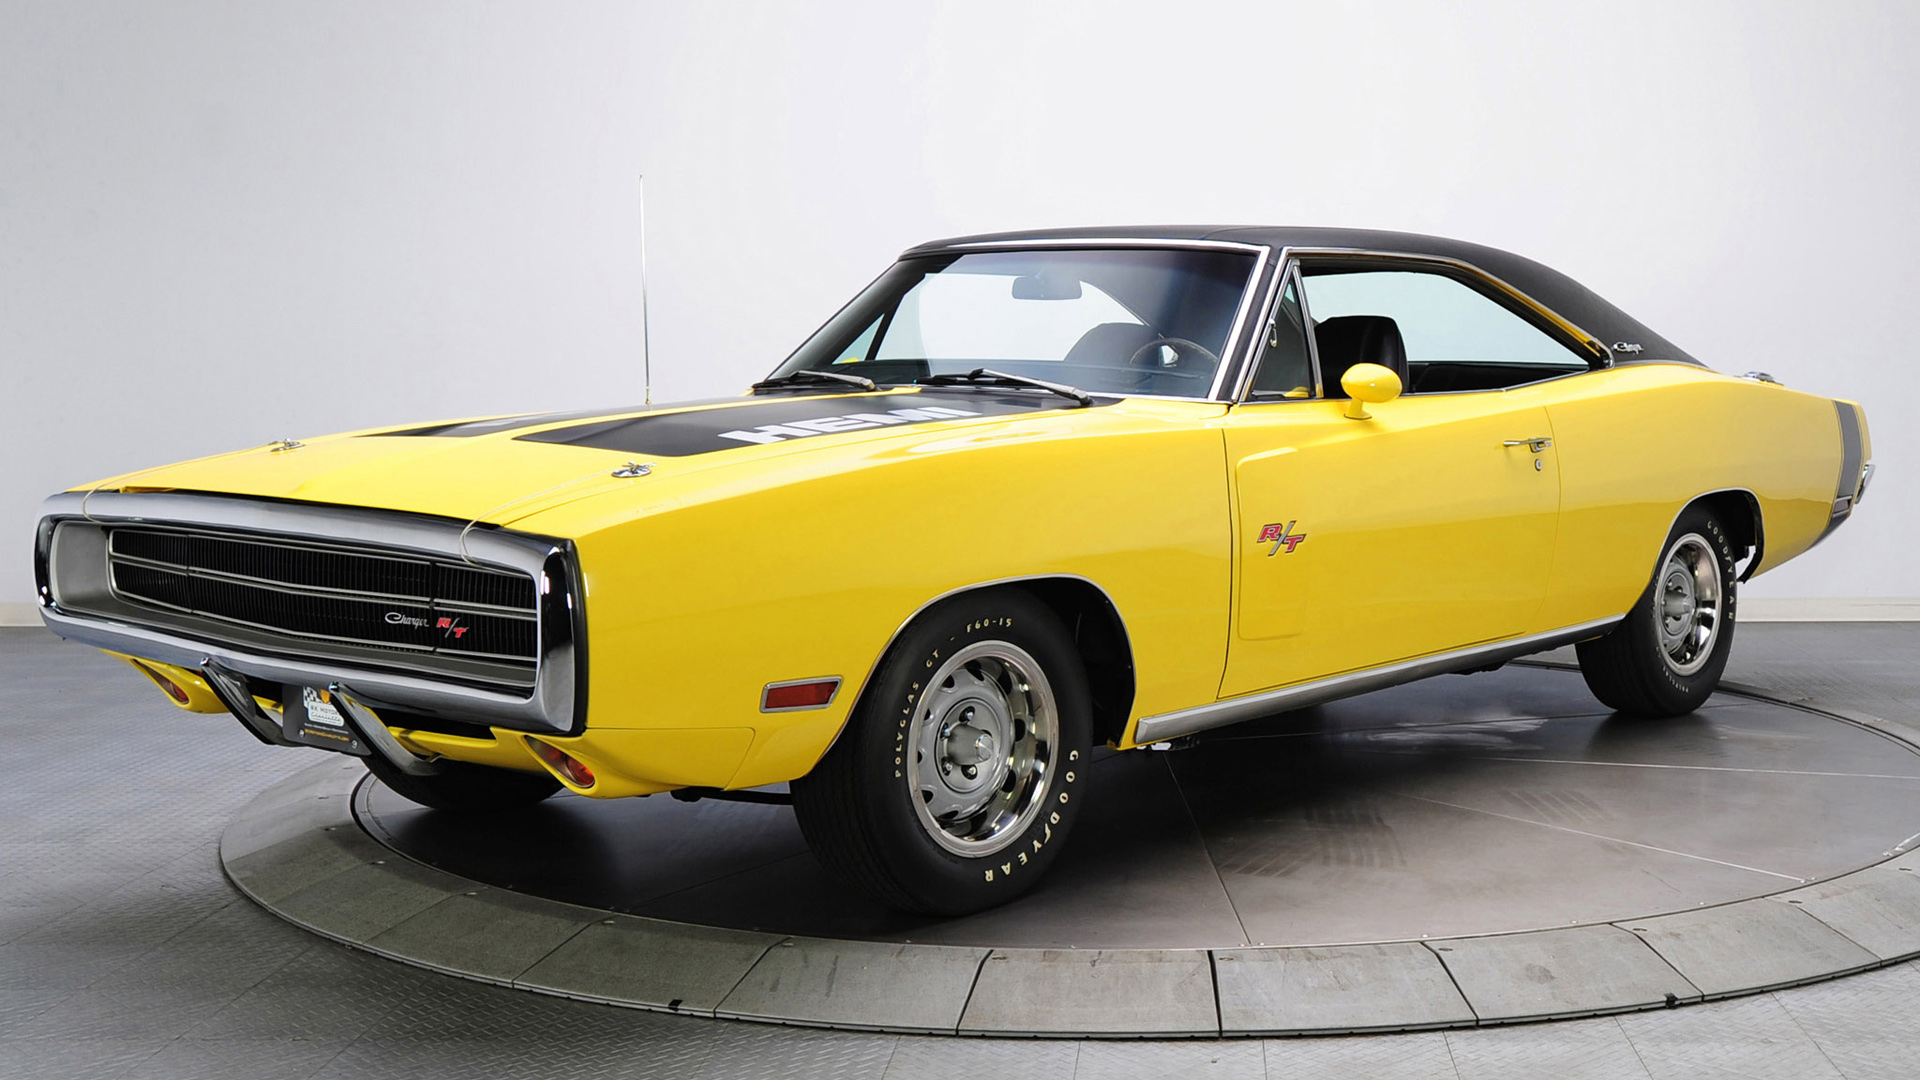 1970 Dodge Charger RT 426 Hemi Wallpapers 1920x1080